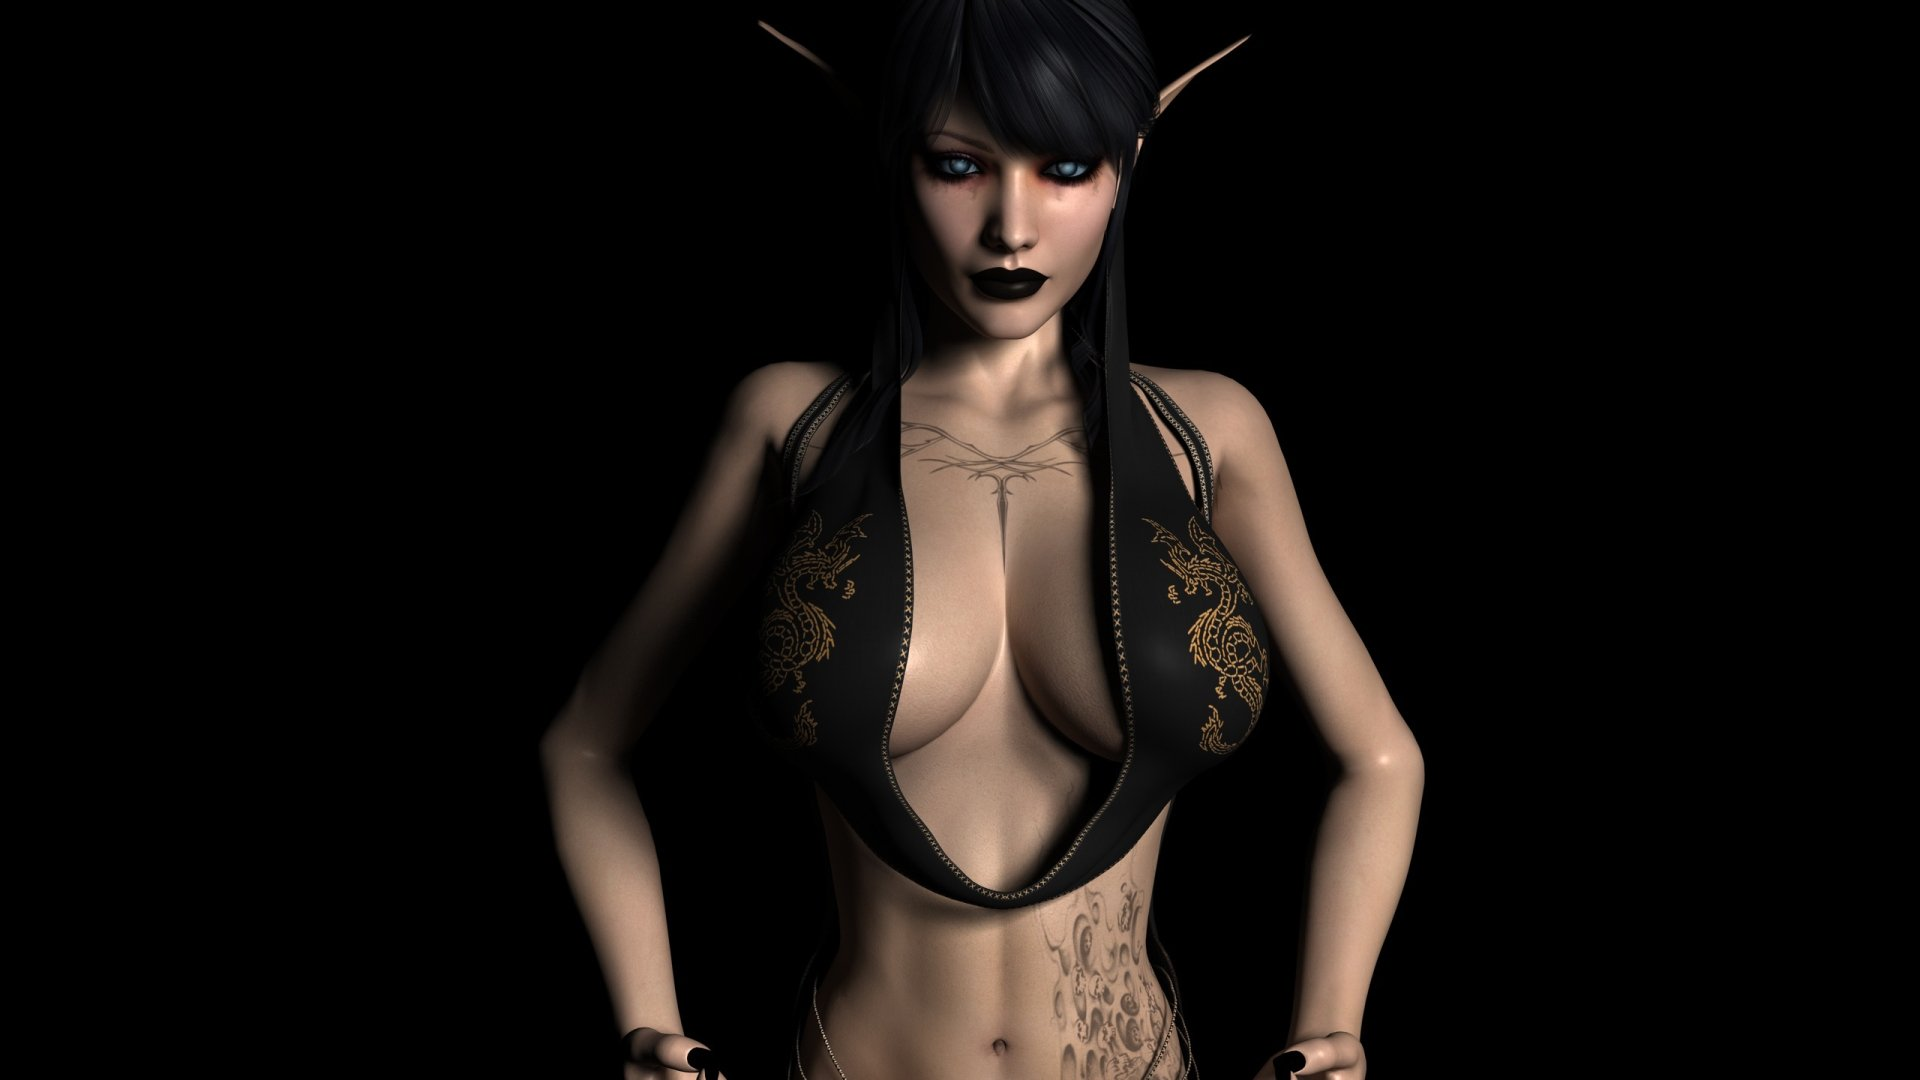 Nacked 3d girls with monsters sexual video